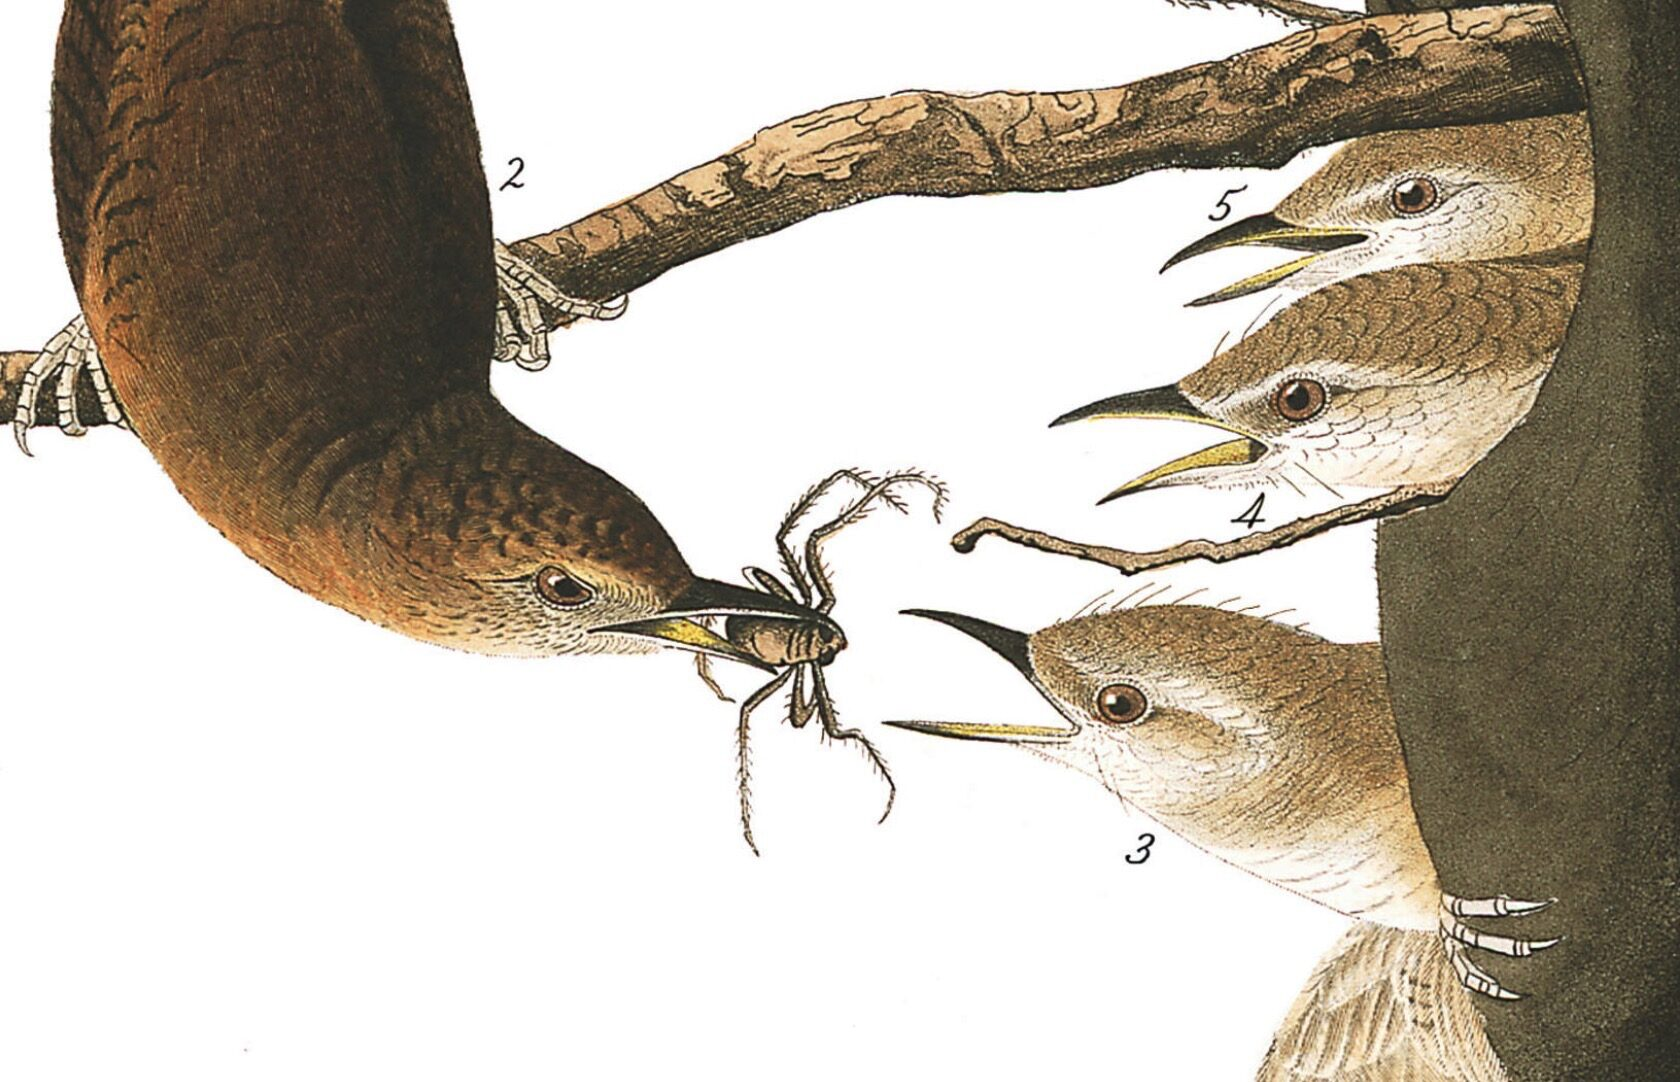 Even the common house wren became a figure of drama for Audubon, who showed a mother feeding a spider to her eager young.